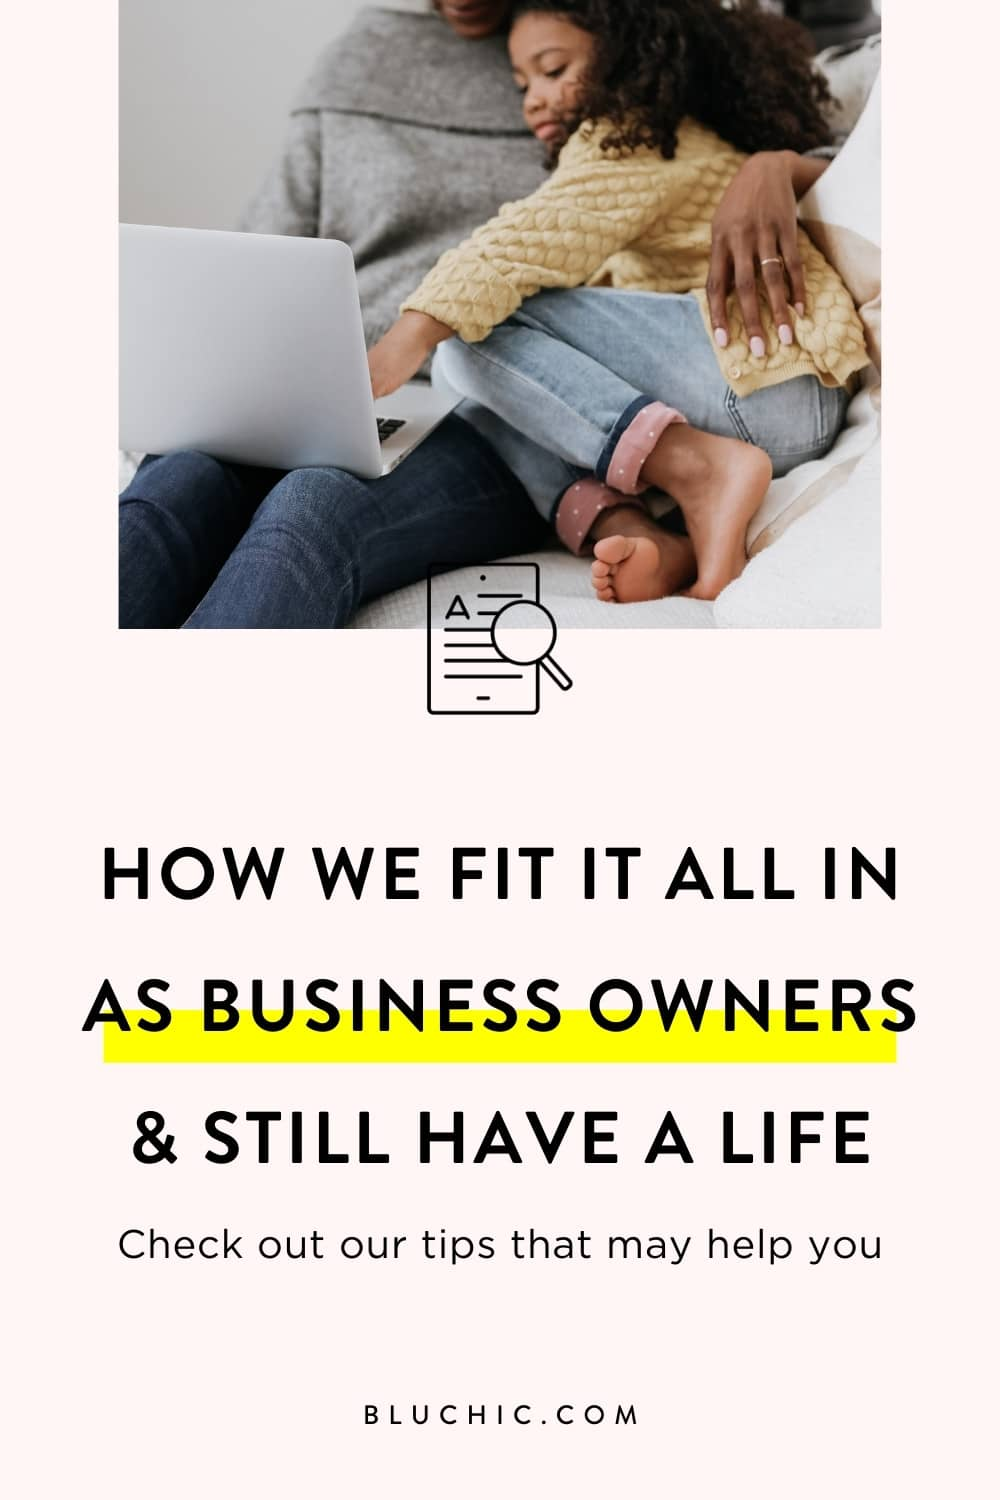 How We Fit It All In As Business Owners & Still Have A Life | How do we fit it all in as business owners and as parents? Get our tips for productivity & time management that may help you as you grow your own business.